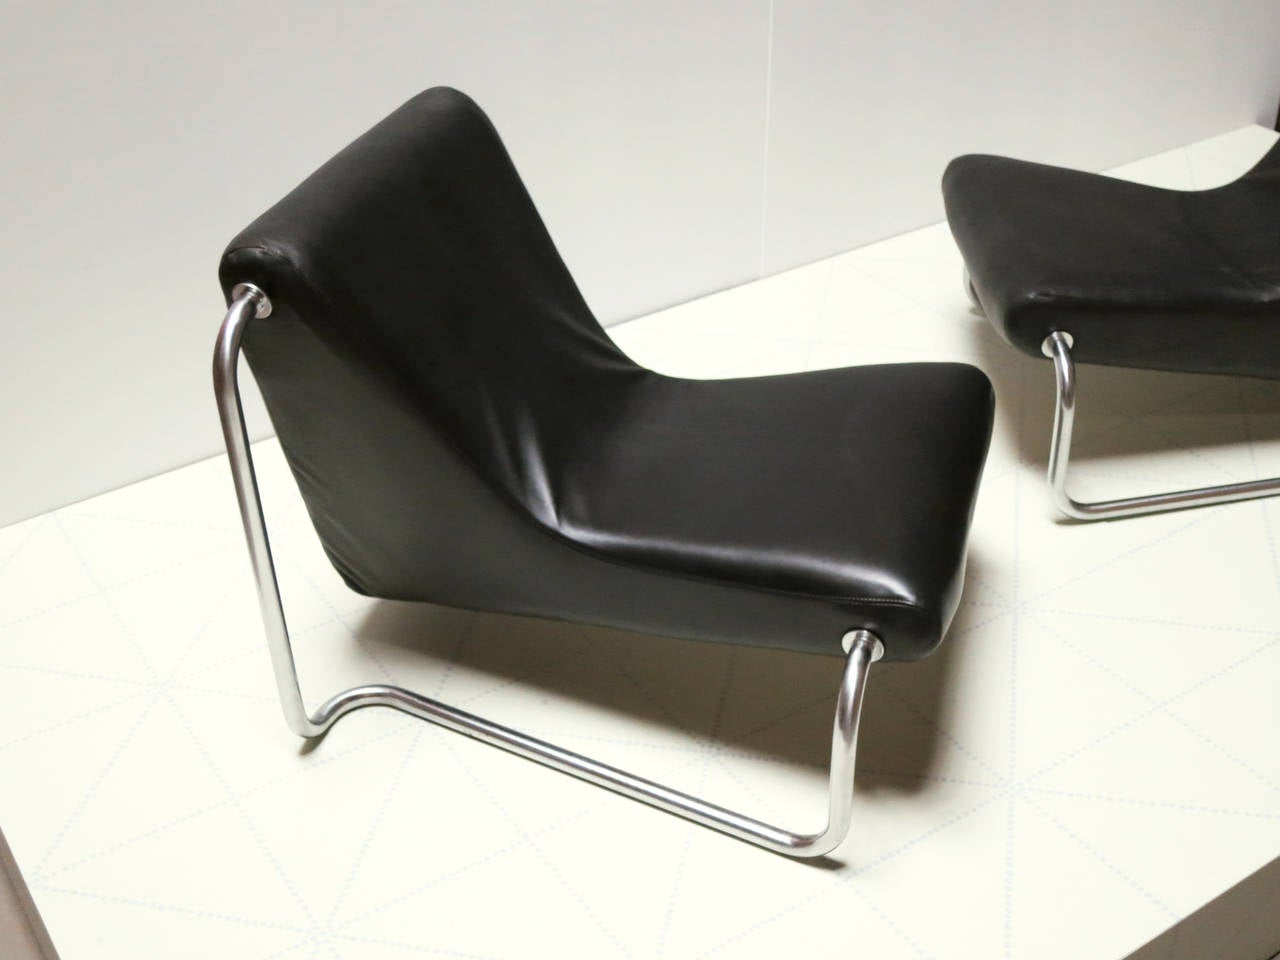 Scandinavian Modern Pair of Leather and Steel 1970s Lounge Chairs by Luigi Colani for Fritz Hansen For Sale